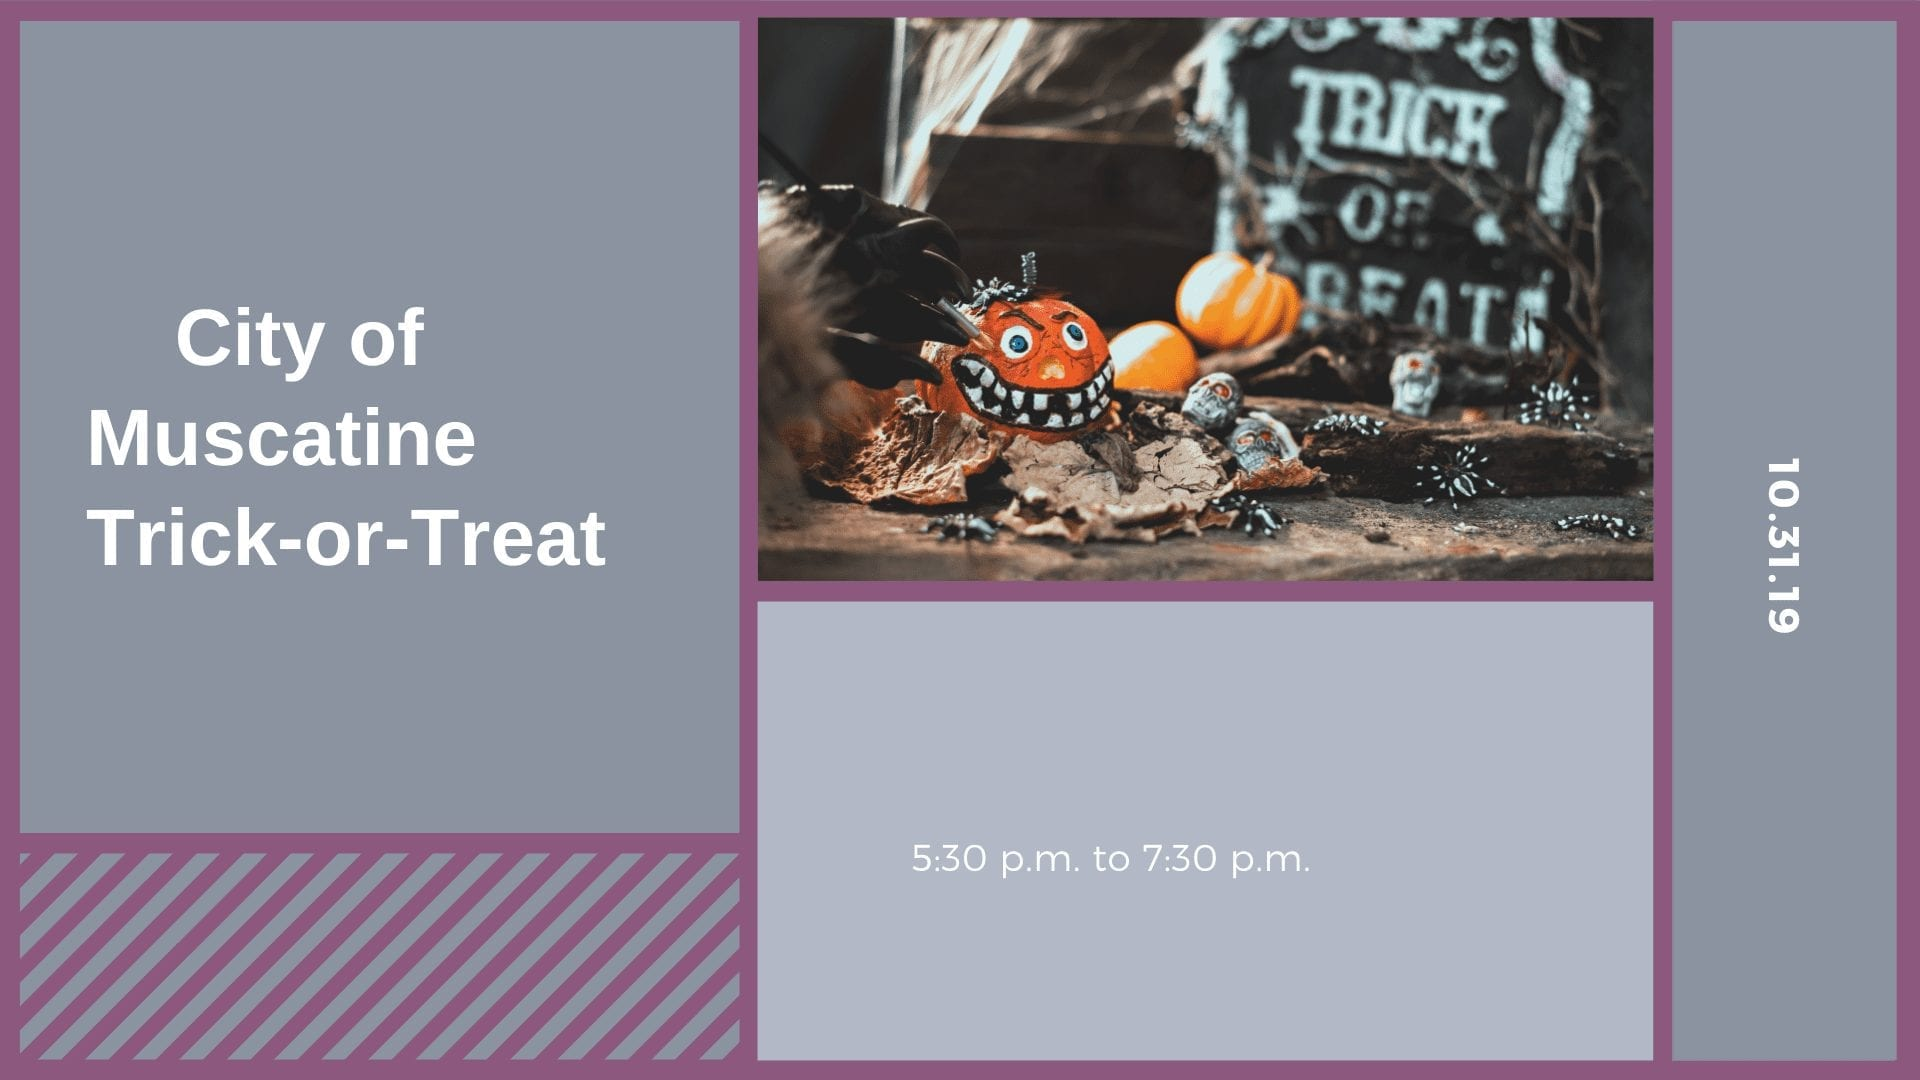 City of Muscatine Trick-or-Treat